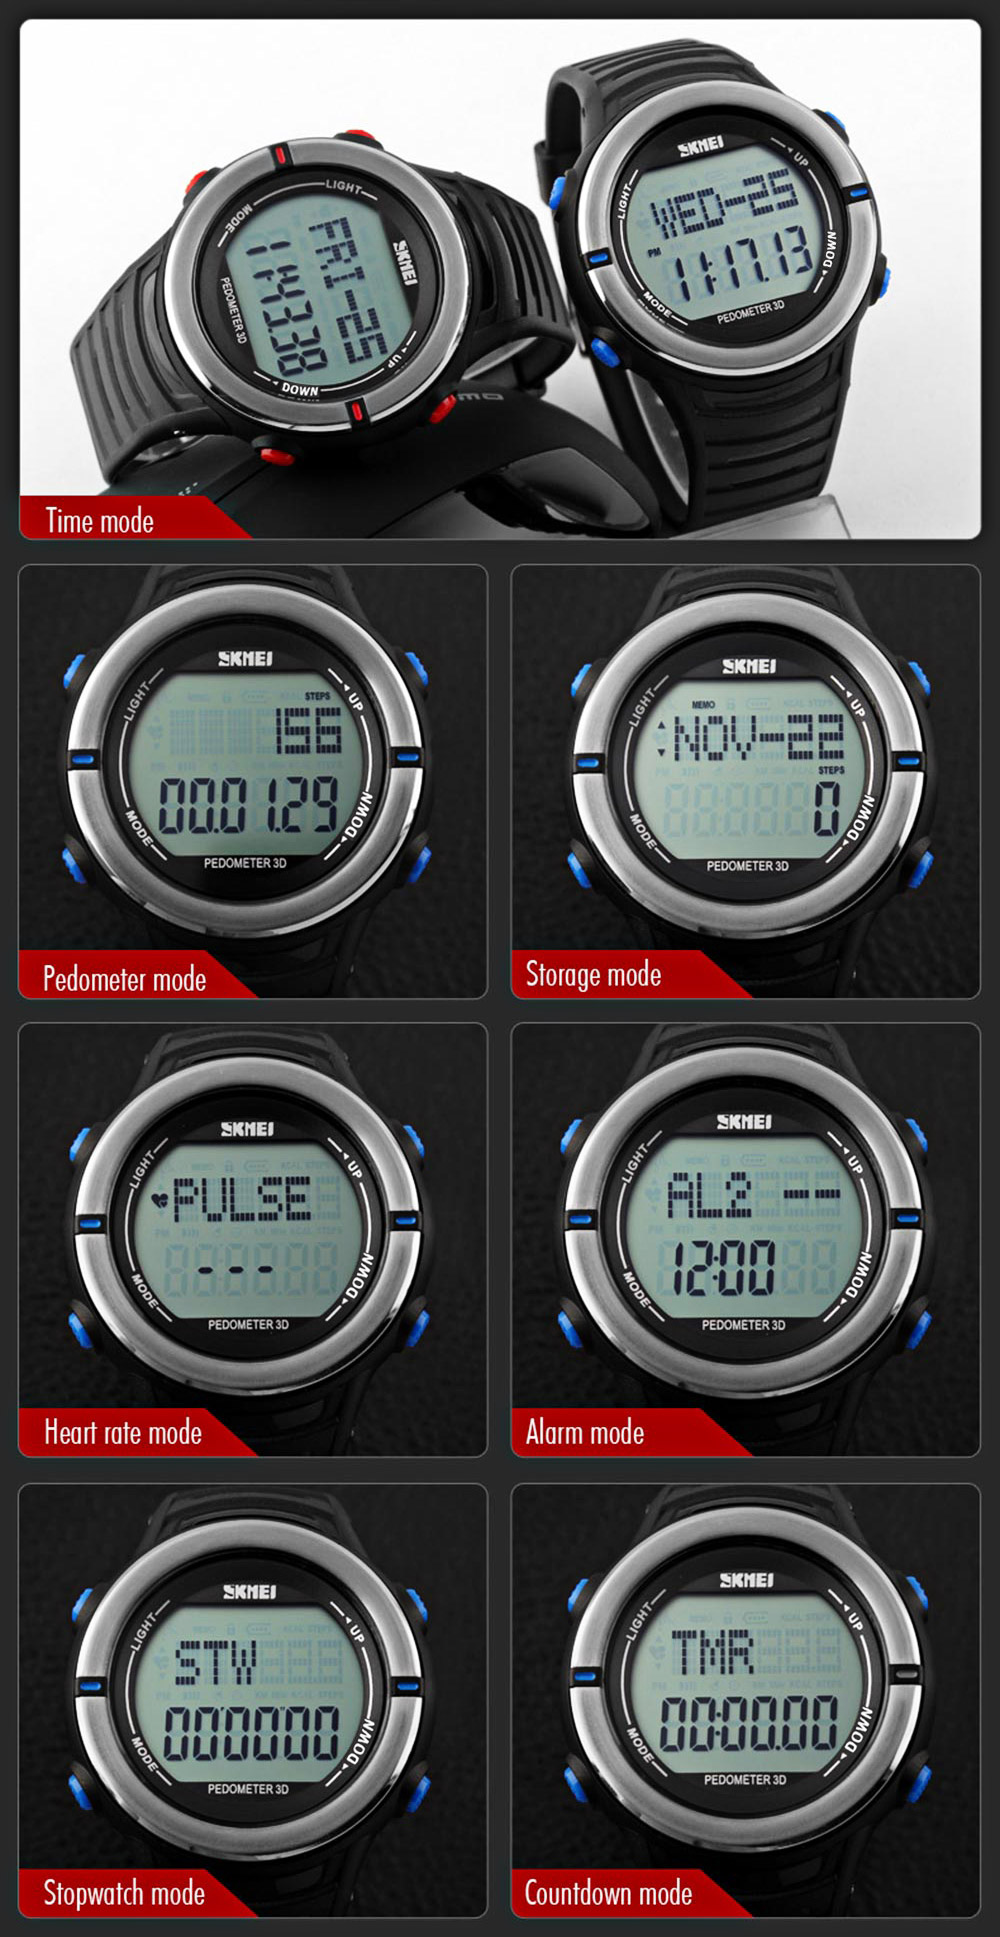 Skmei 1111 Heart Rate Sports Digital Watch with Pedometer Function Water Resistant